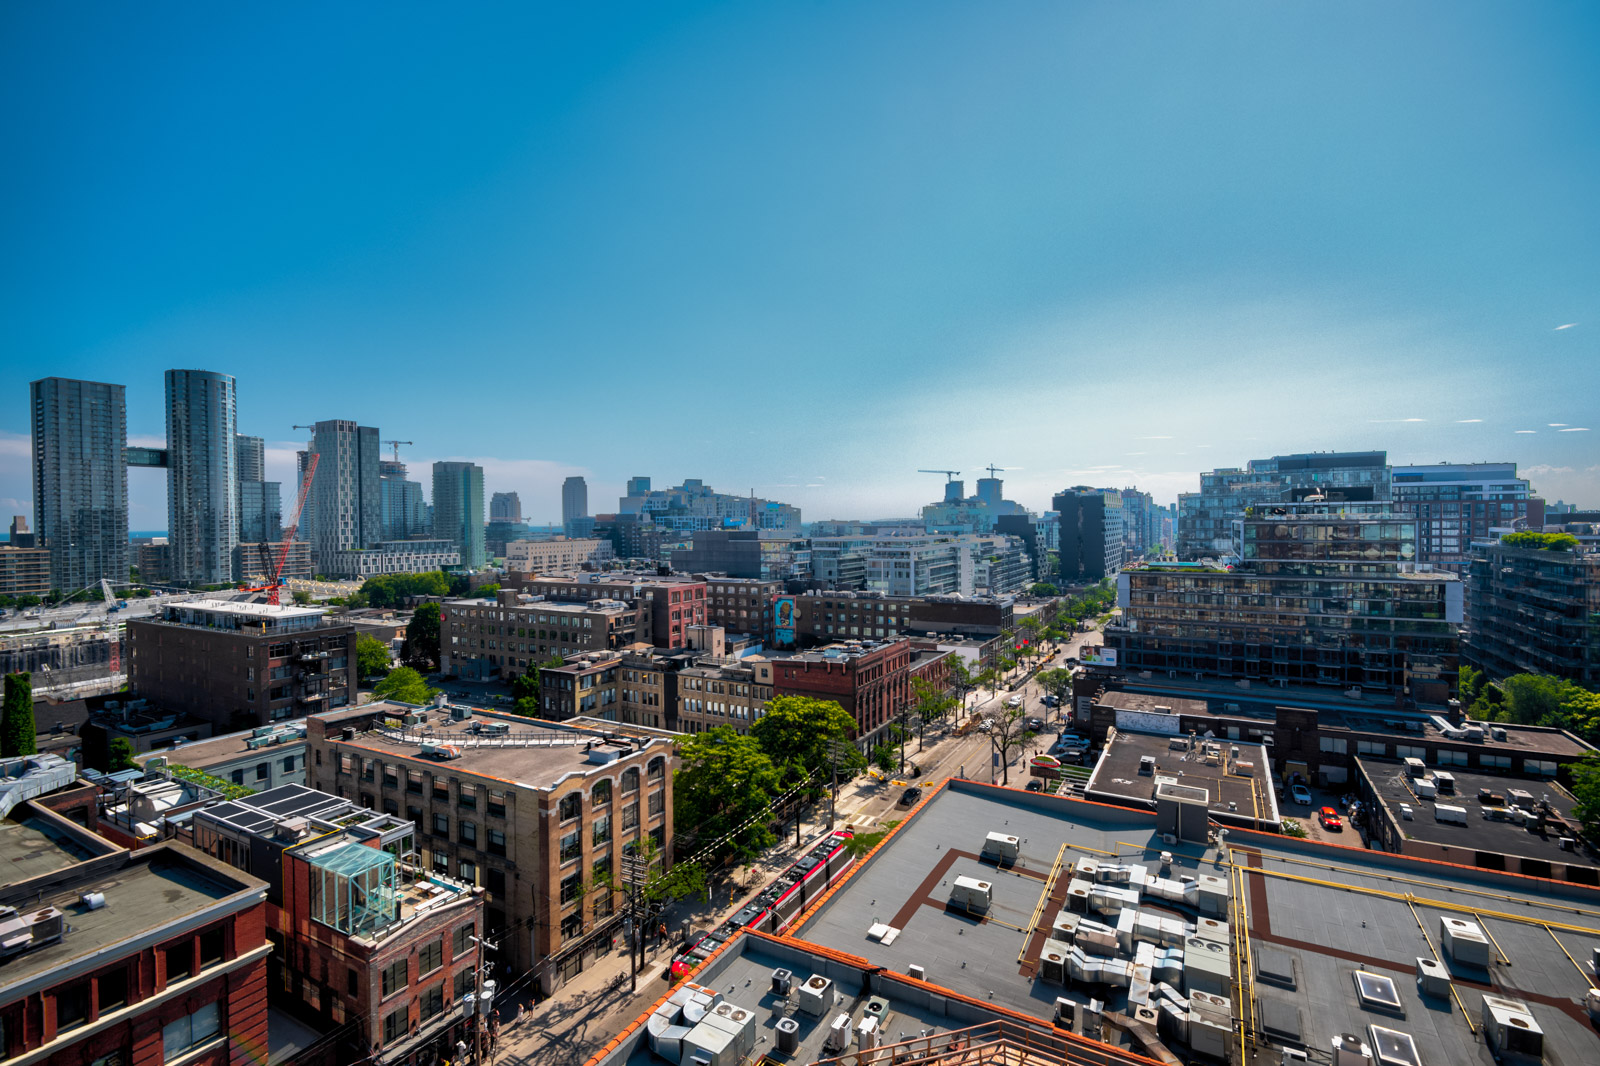 Daytime view of King St W, Toronto from Victory Lofts rooftop.